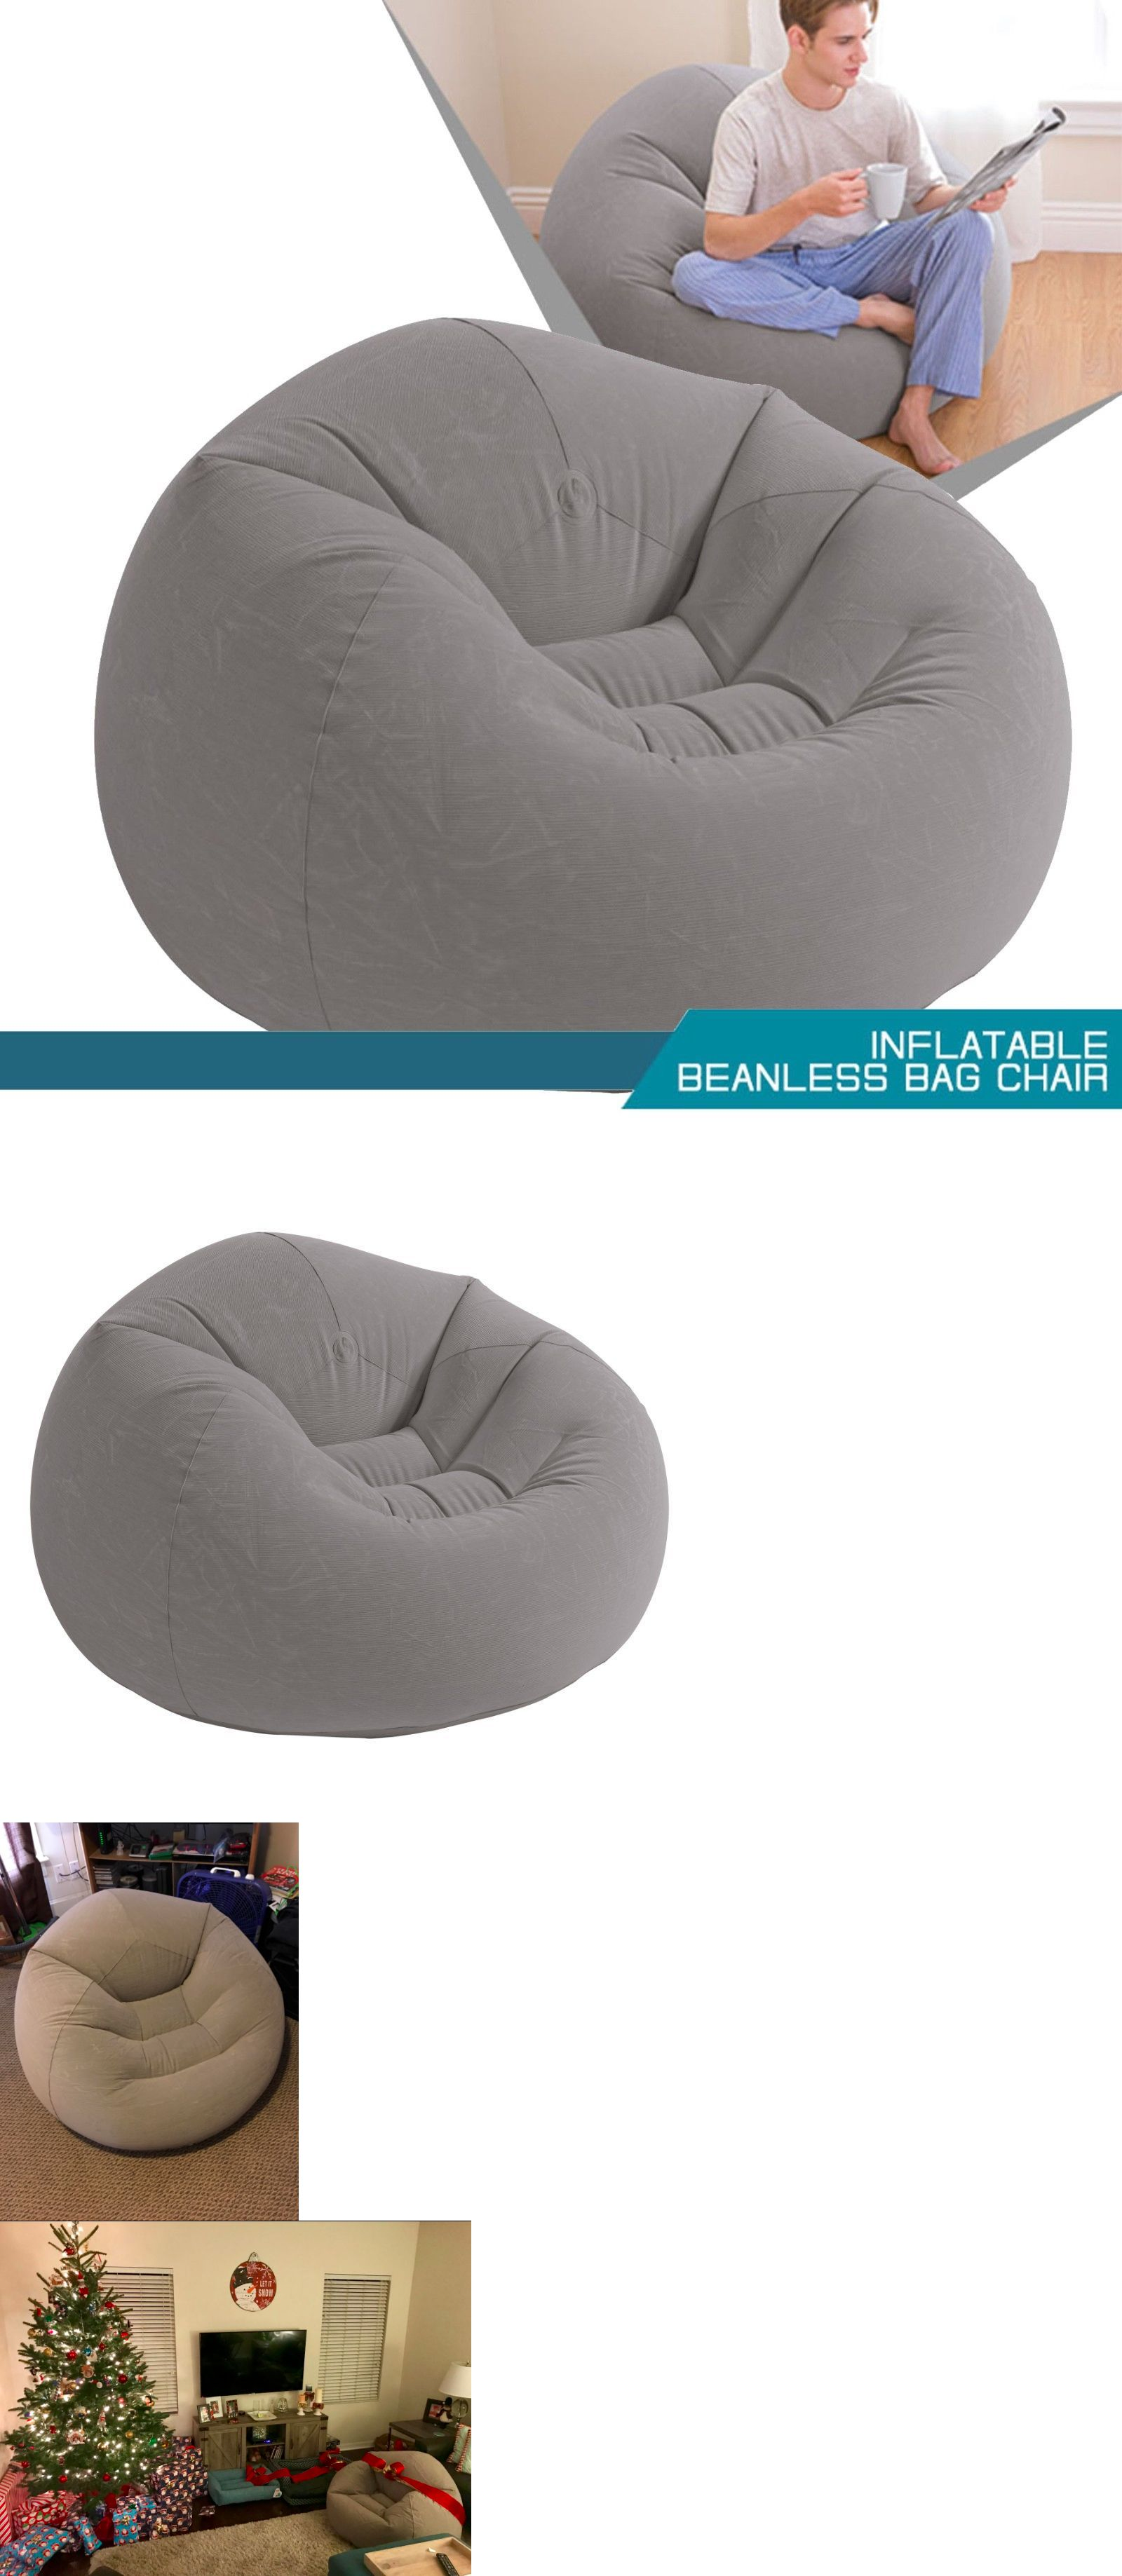 Inflatable furniture  Bean Bag Chair Inflatable Beanless ud xud xud Inflates Quickly